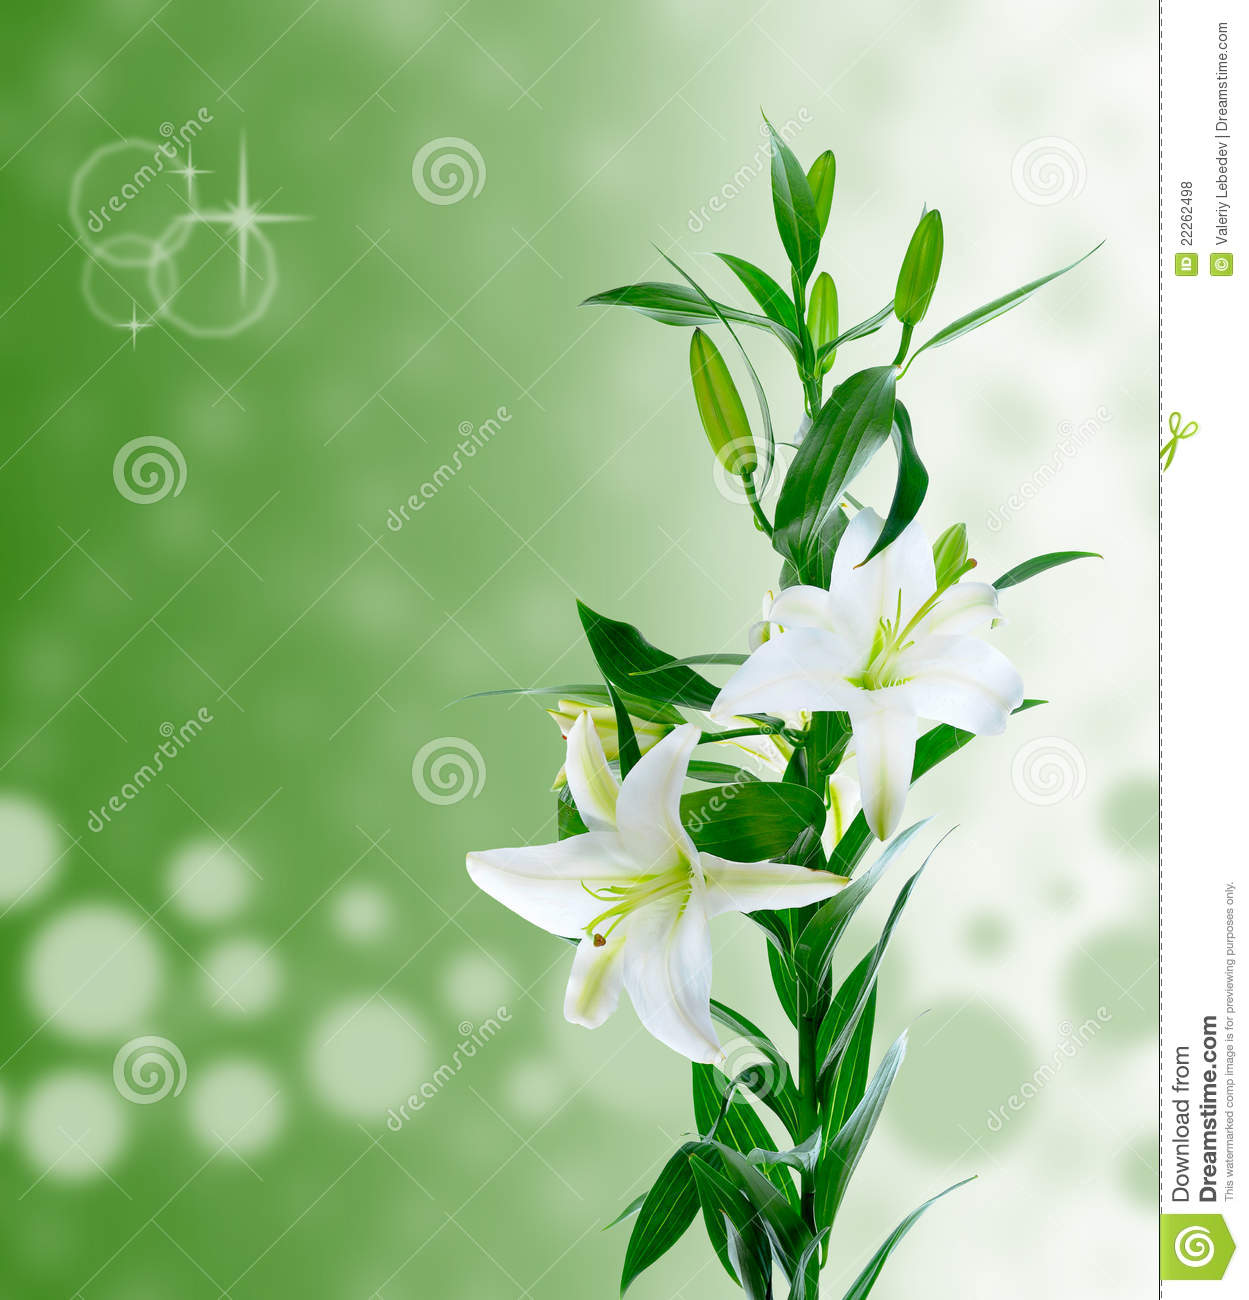 Free pictures of lily flowers picture black and white download Beautiful White Lily Flowers Royalty Free Stock Photos - Image ... picture black and white download